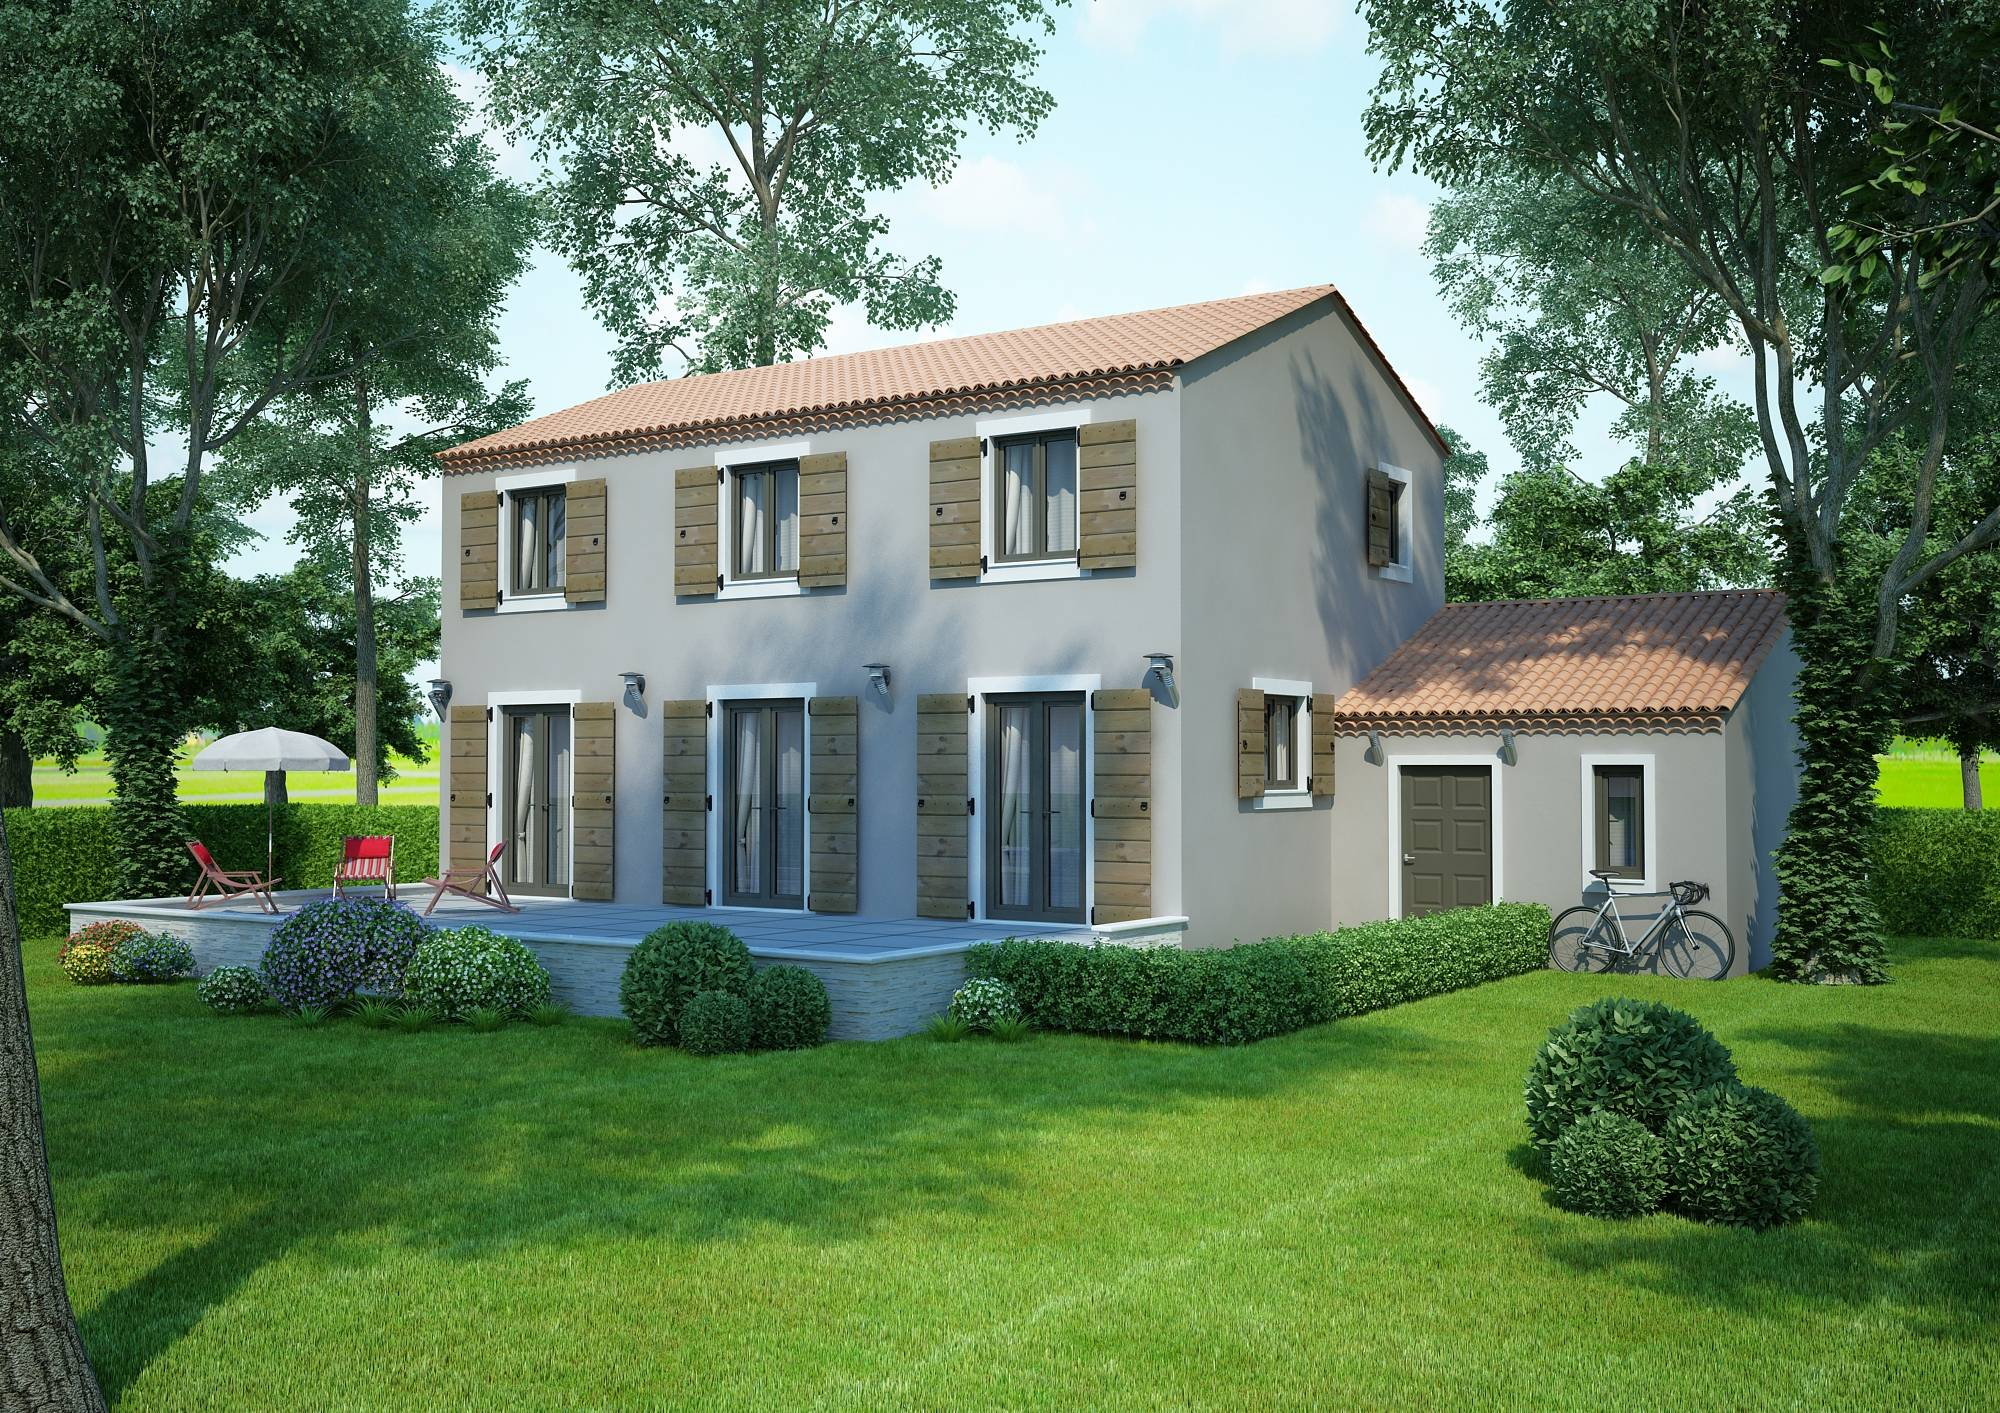 Mod le villa traditionnelle 100m2 tage r alisable dans for Modele de villa